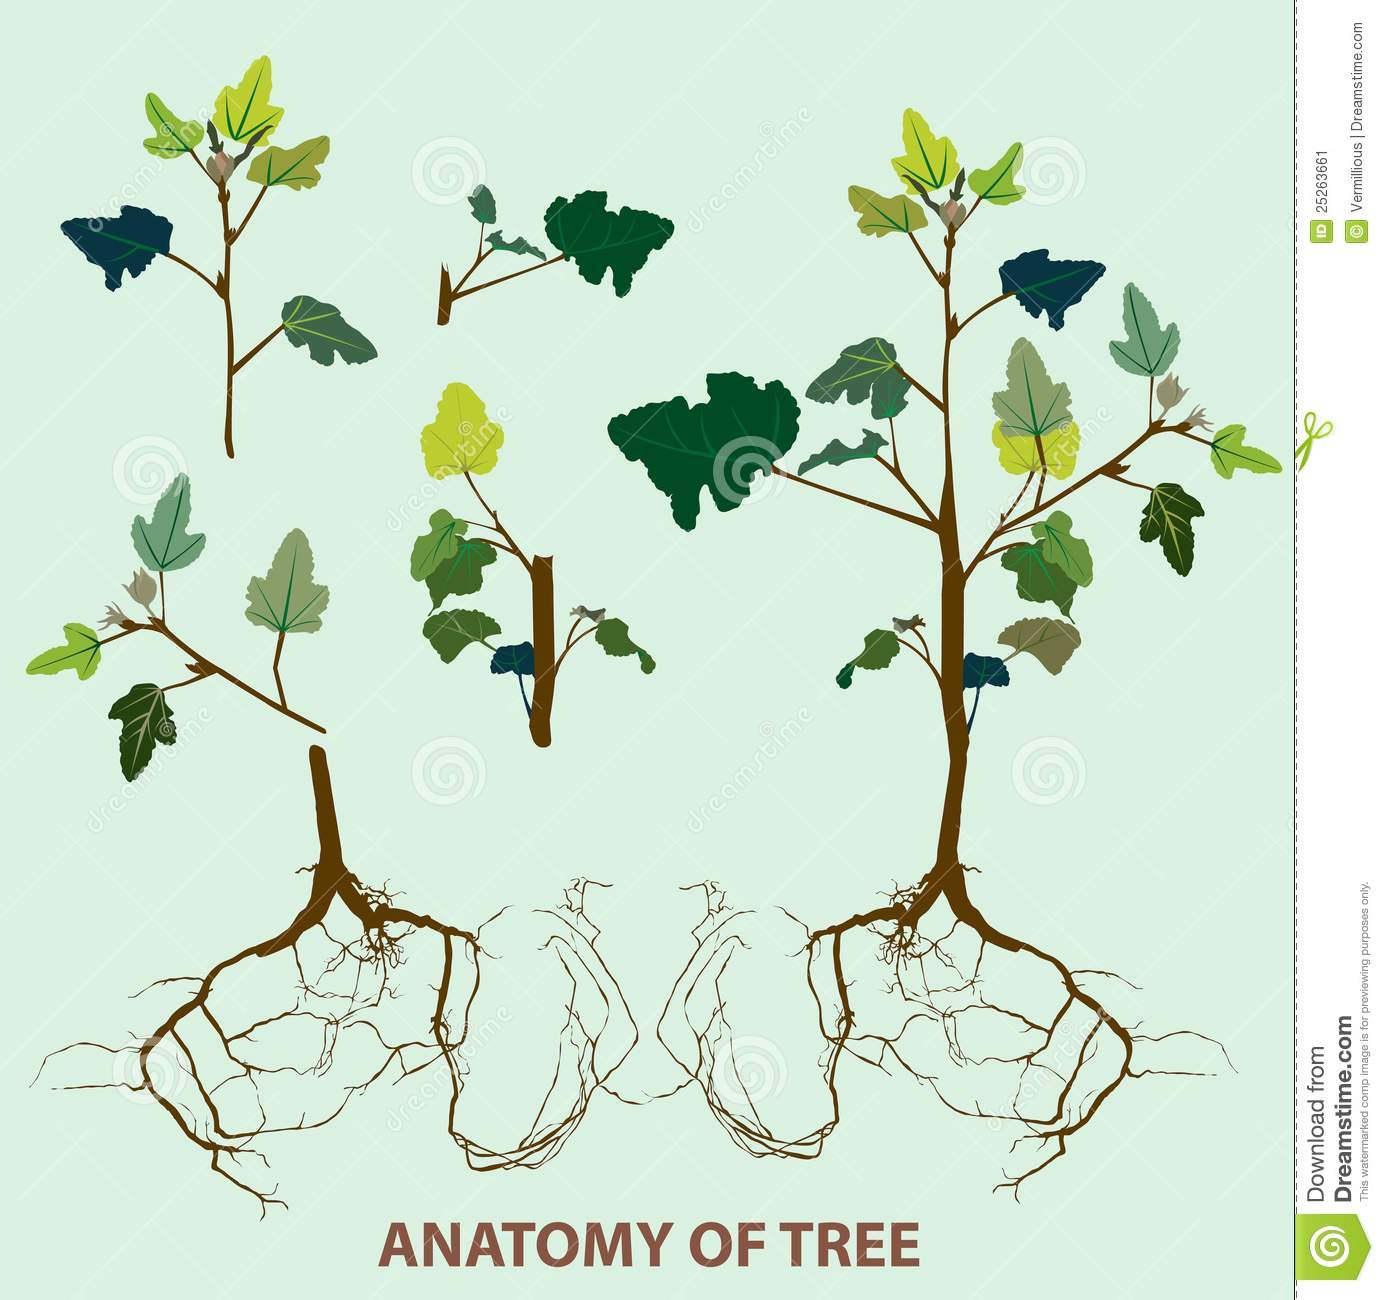 Tree anatomy top to root stock illustration. Illustration of jungle ...